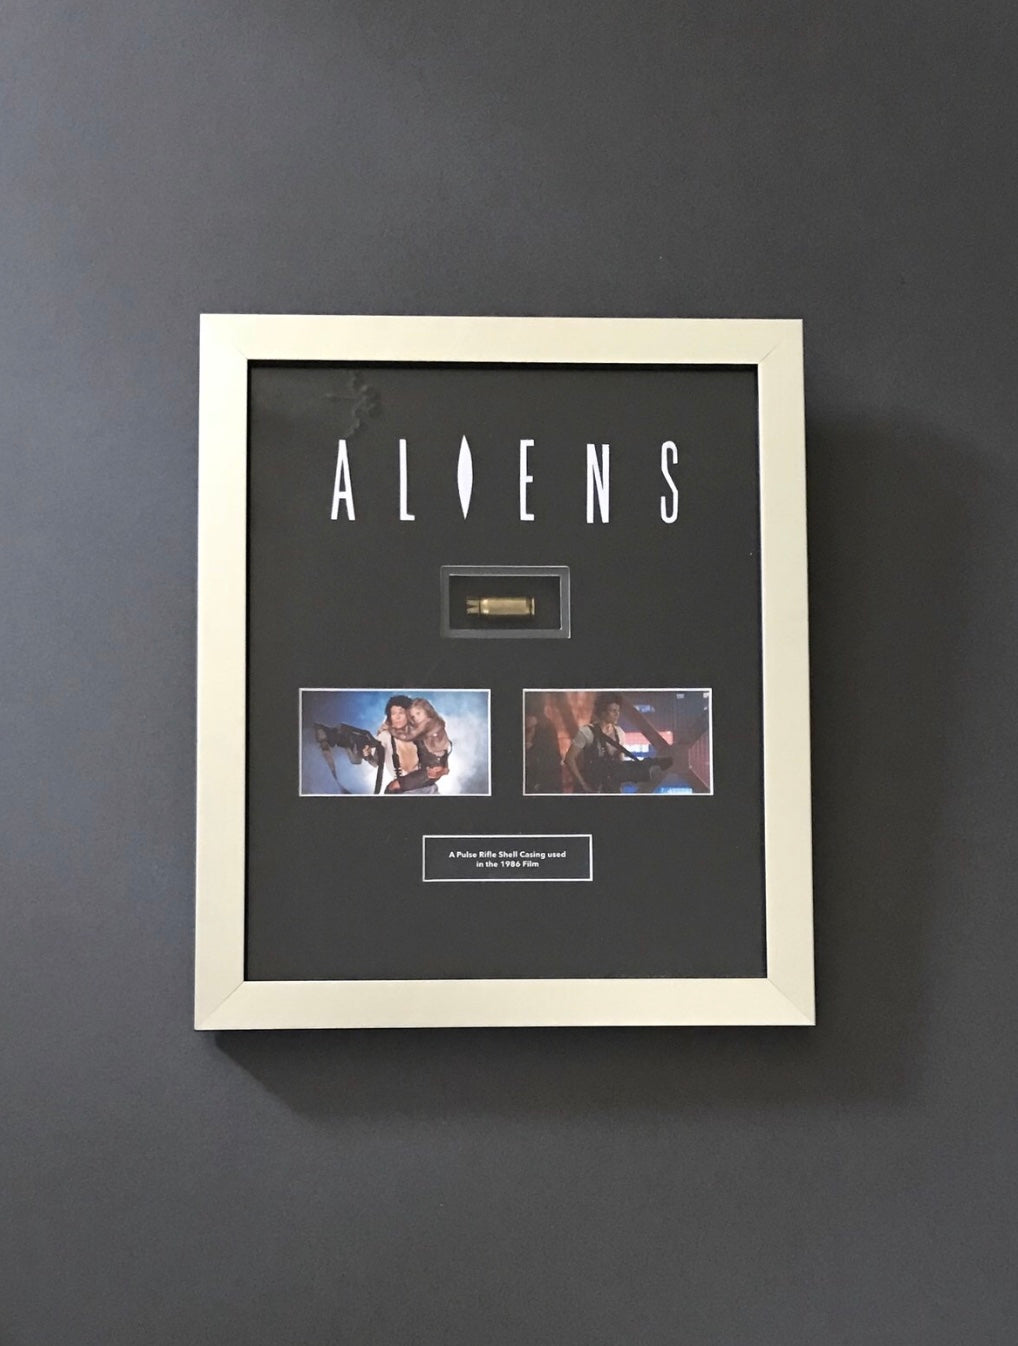 Aliens (1986) - A Pulse Rifle Shell Casing used in the Film - SOLD